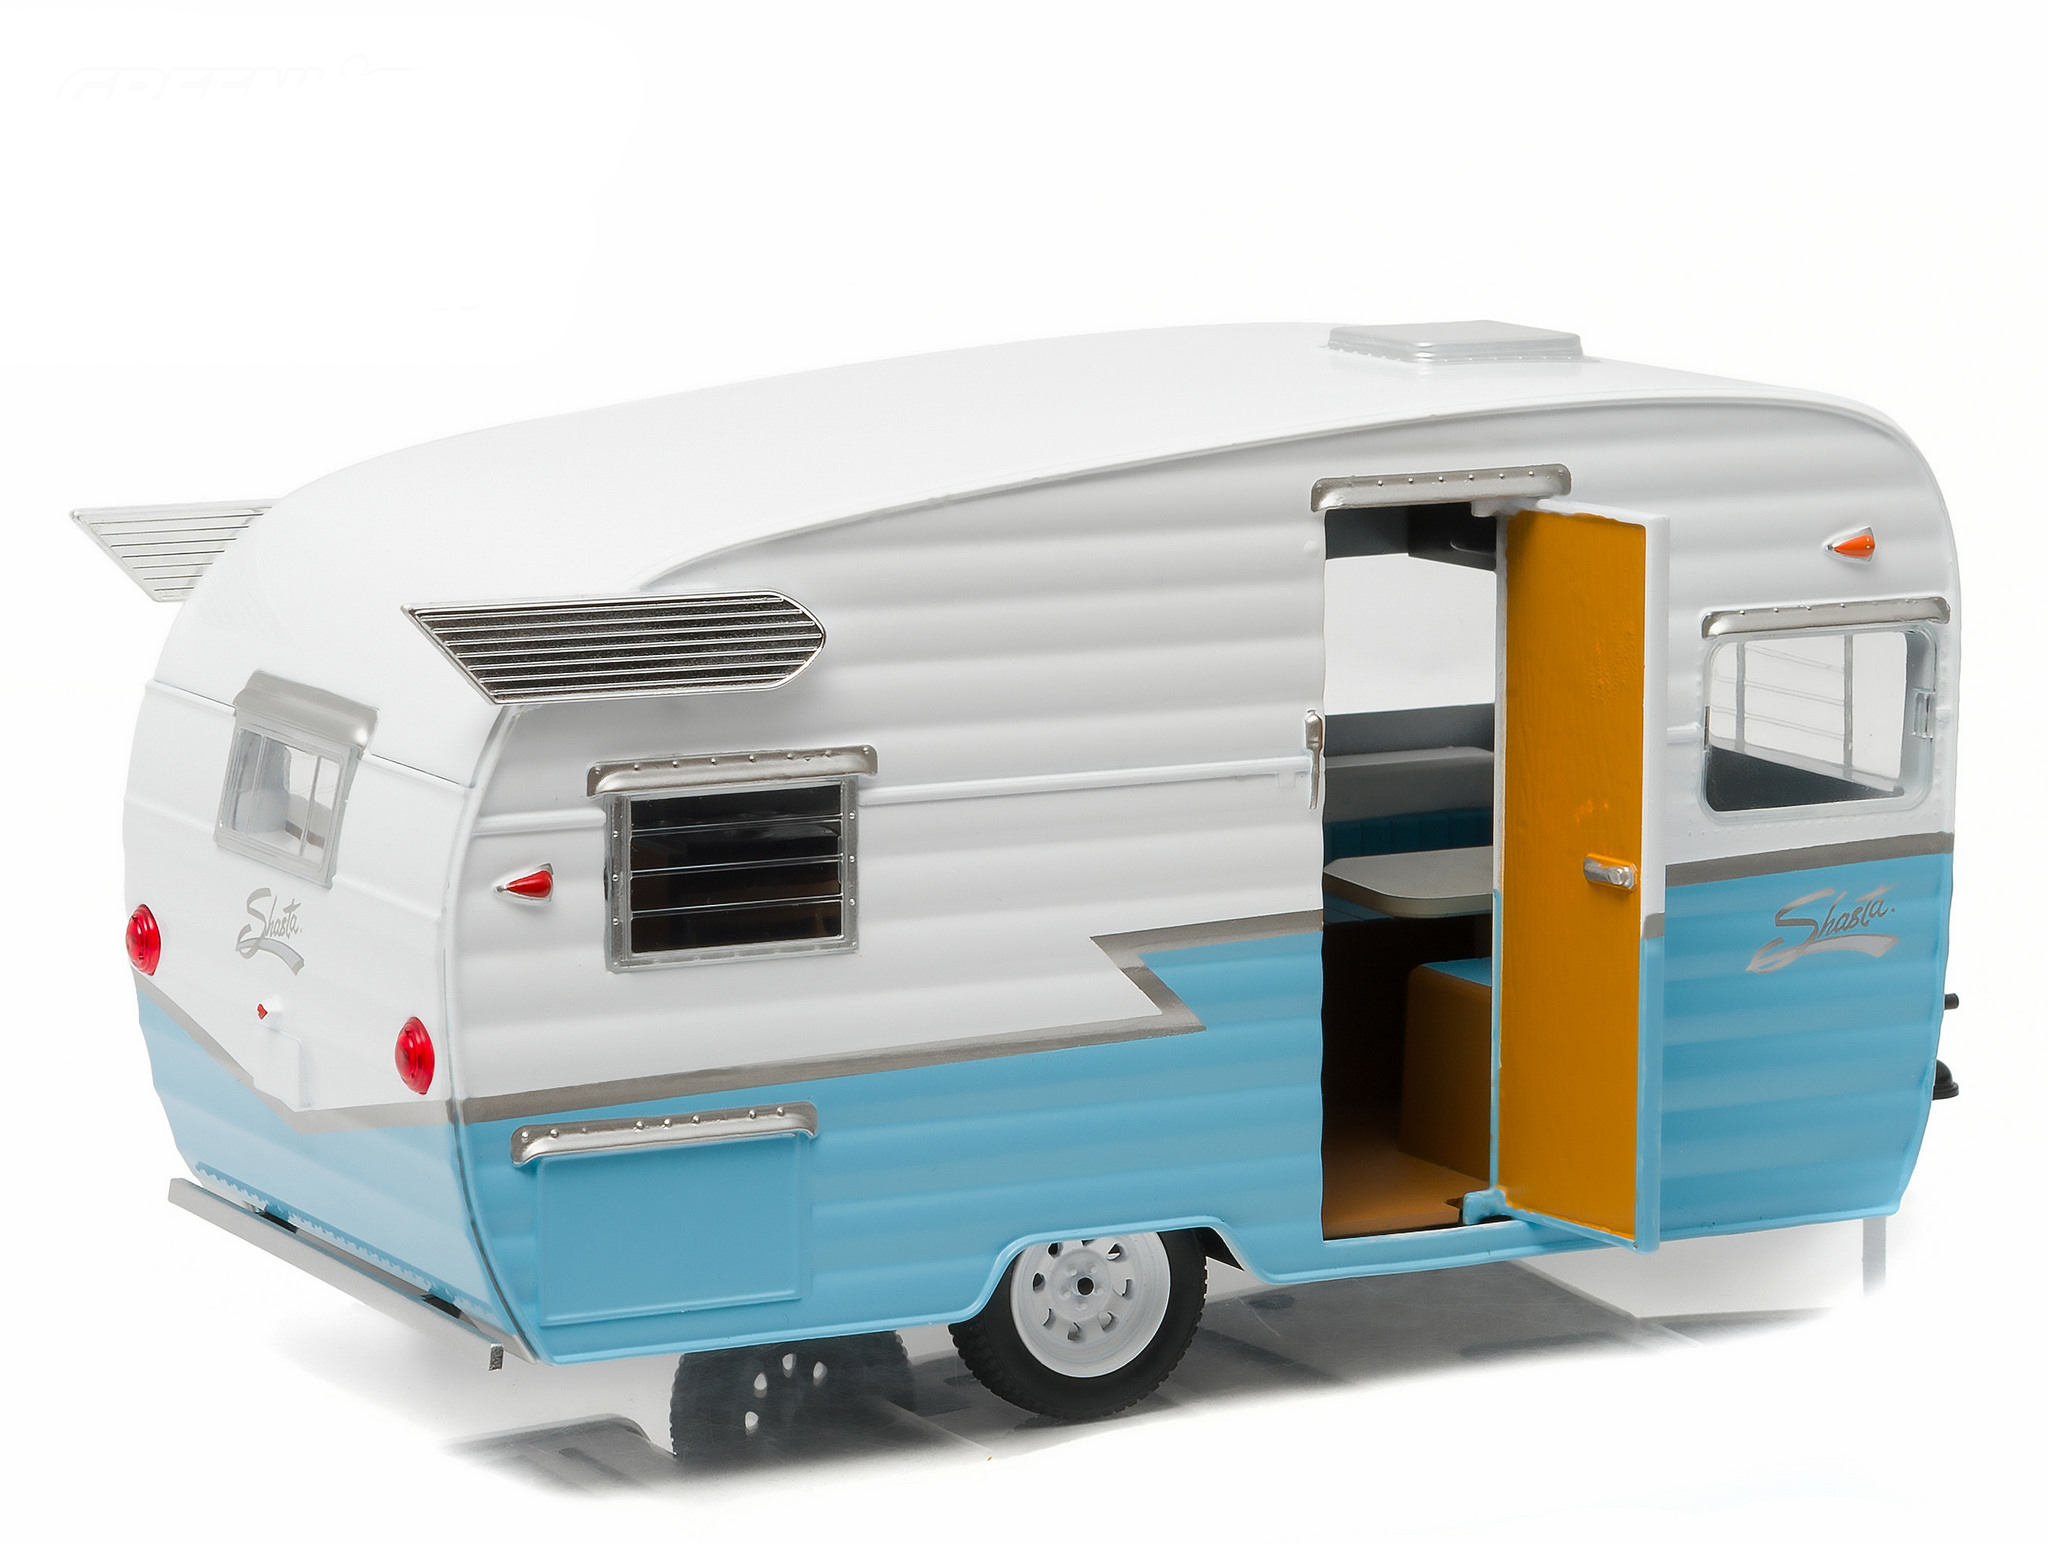 Shasta Airflyte 15' Camper Trailer Blue for 1/24 Scale Model Cars and  Trucks 1/24 Diecast Model by Greenlight